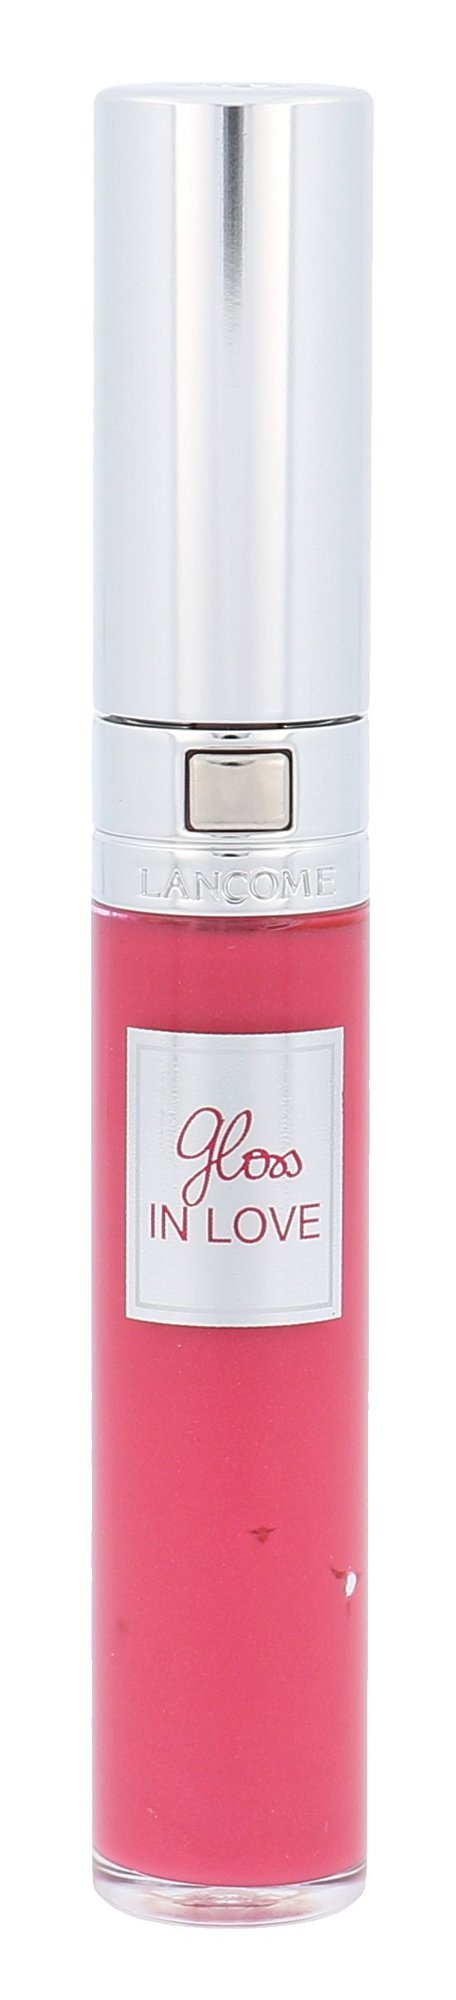 Lancôme Gloss In Love Cosmetic 6ml 391